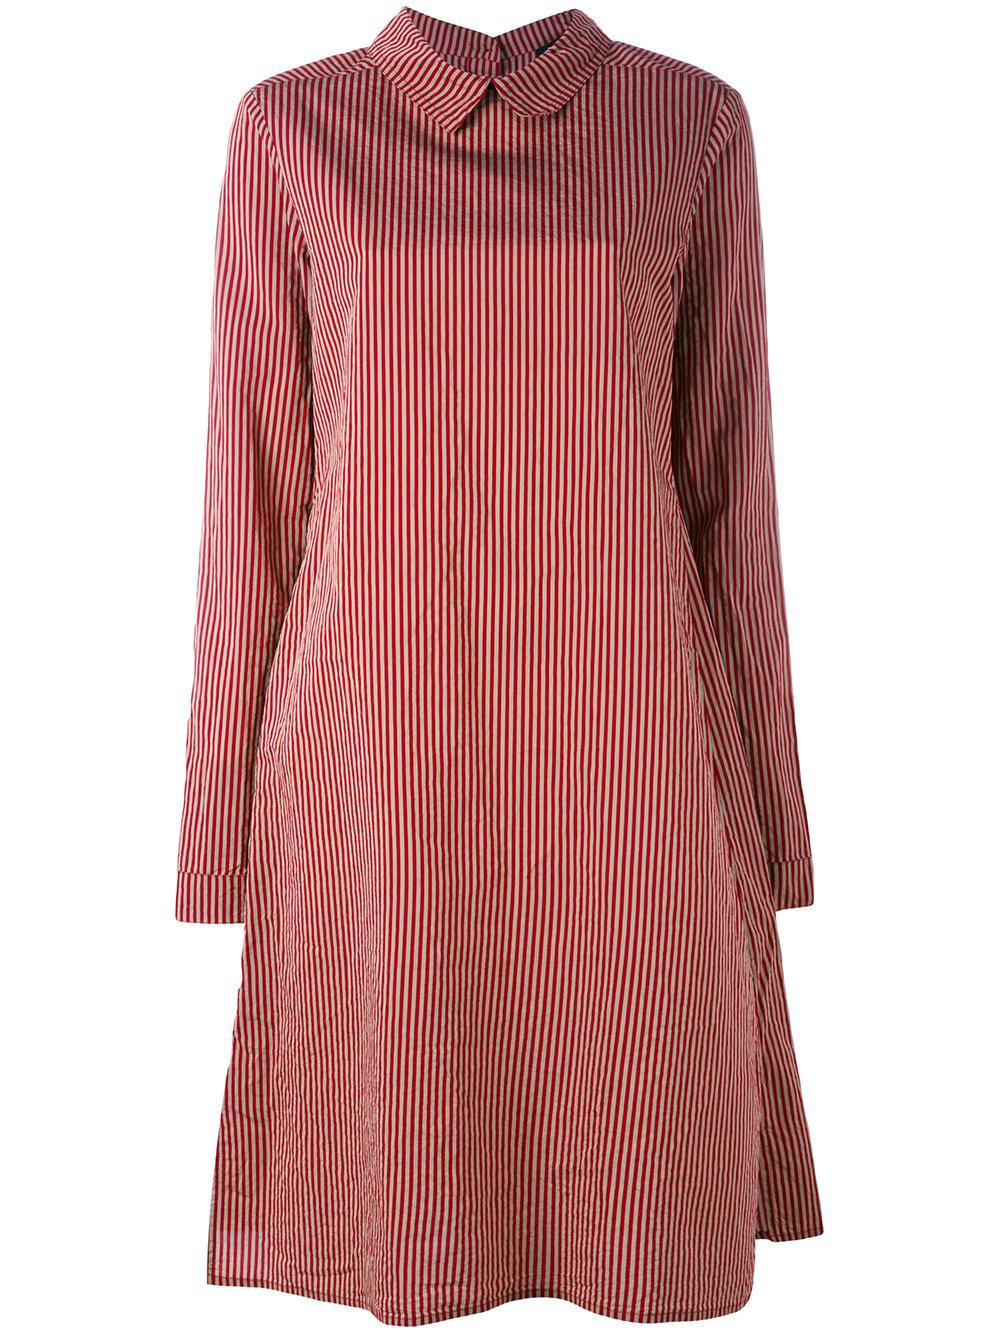 Rundholz striped shirt dress in red lyst for Mens red and white striped dress shirt